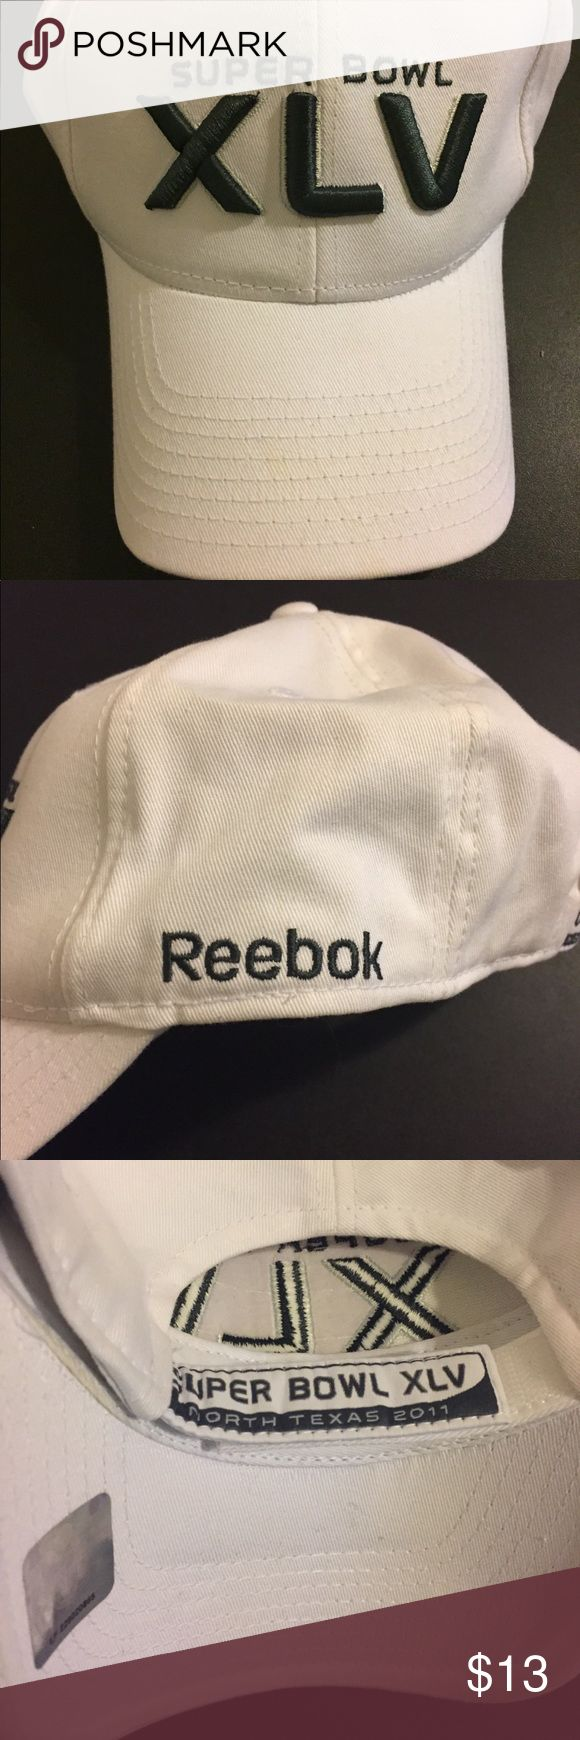 Reebok Super Bowl XLV 2011 Texas Cap Hat Reebok Super Bowl XLV  Green Bay Packers vs Pittsburgh Steelers  Unisex Size: One size fits all Style: Velcro strap Color: White and Silver Brand: Reebok Condition: Pre Owned  Any questions, please ask!  JG. MINISTRIES Reebok Accessories Hats